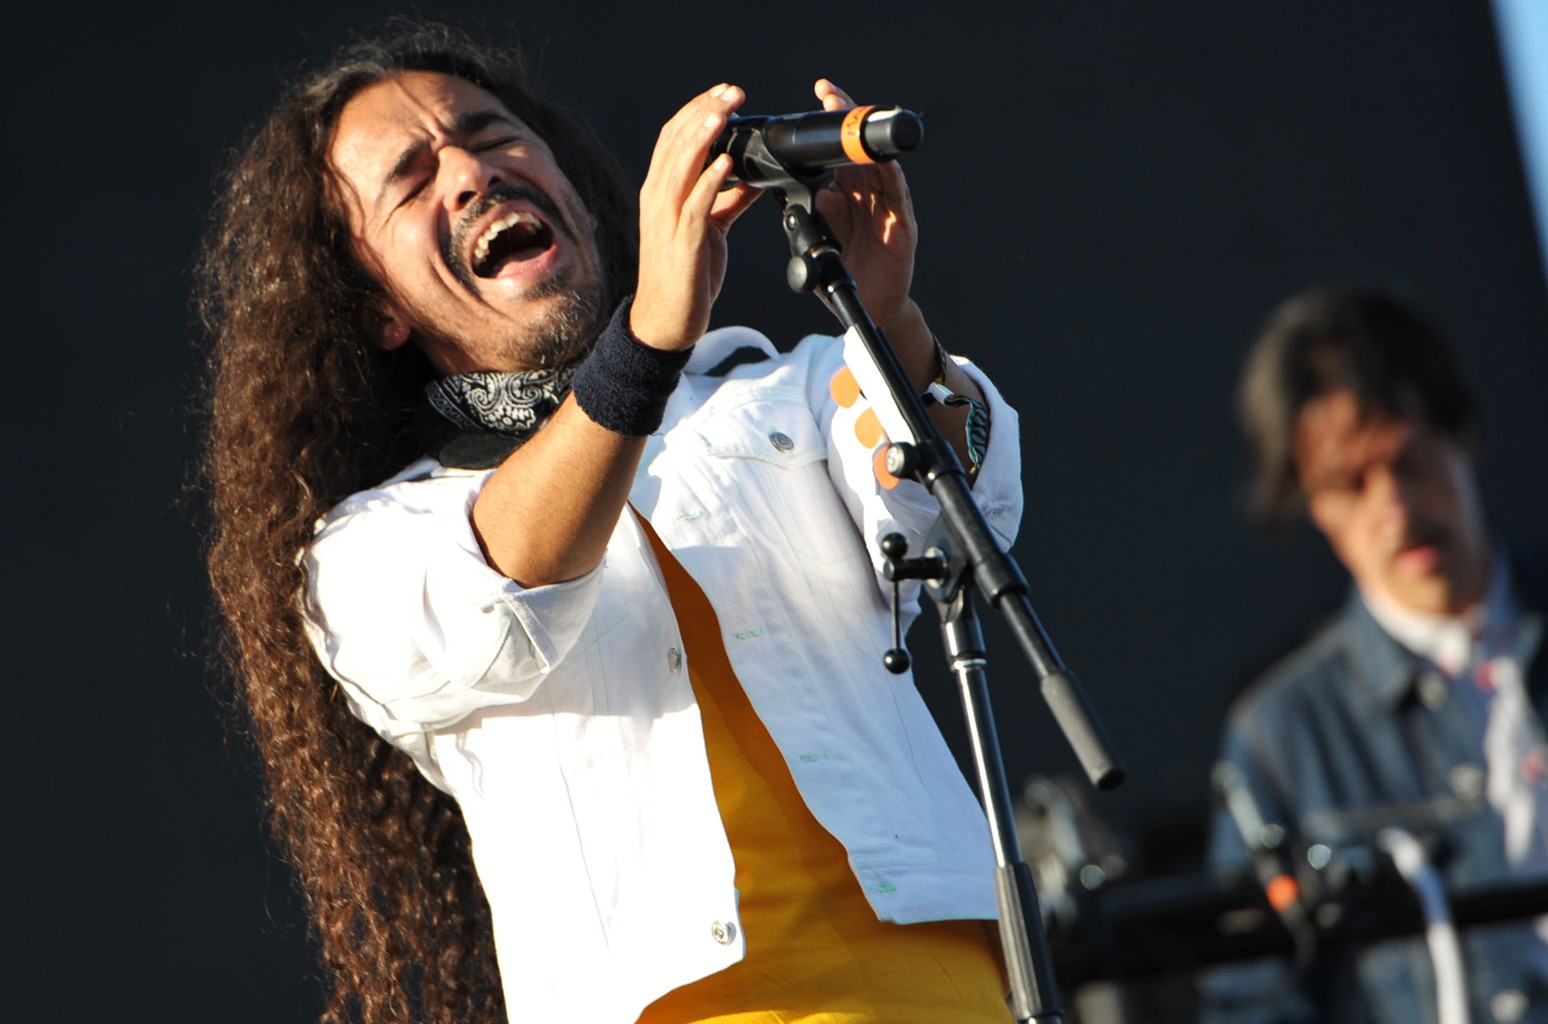 Cafe Tacuba perform at the Empire Polo Club on in Indio, Calif. (Photo by John Shearer/Invision/AP)